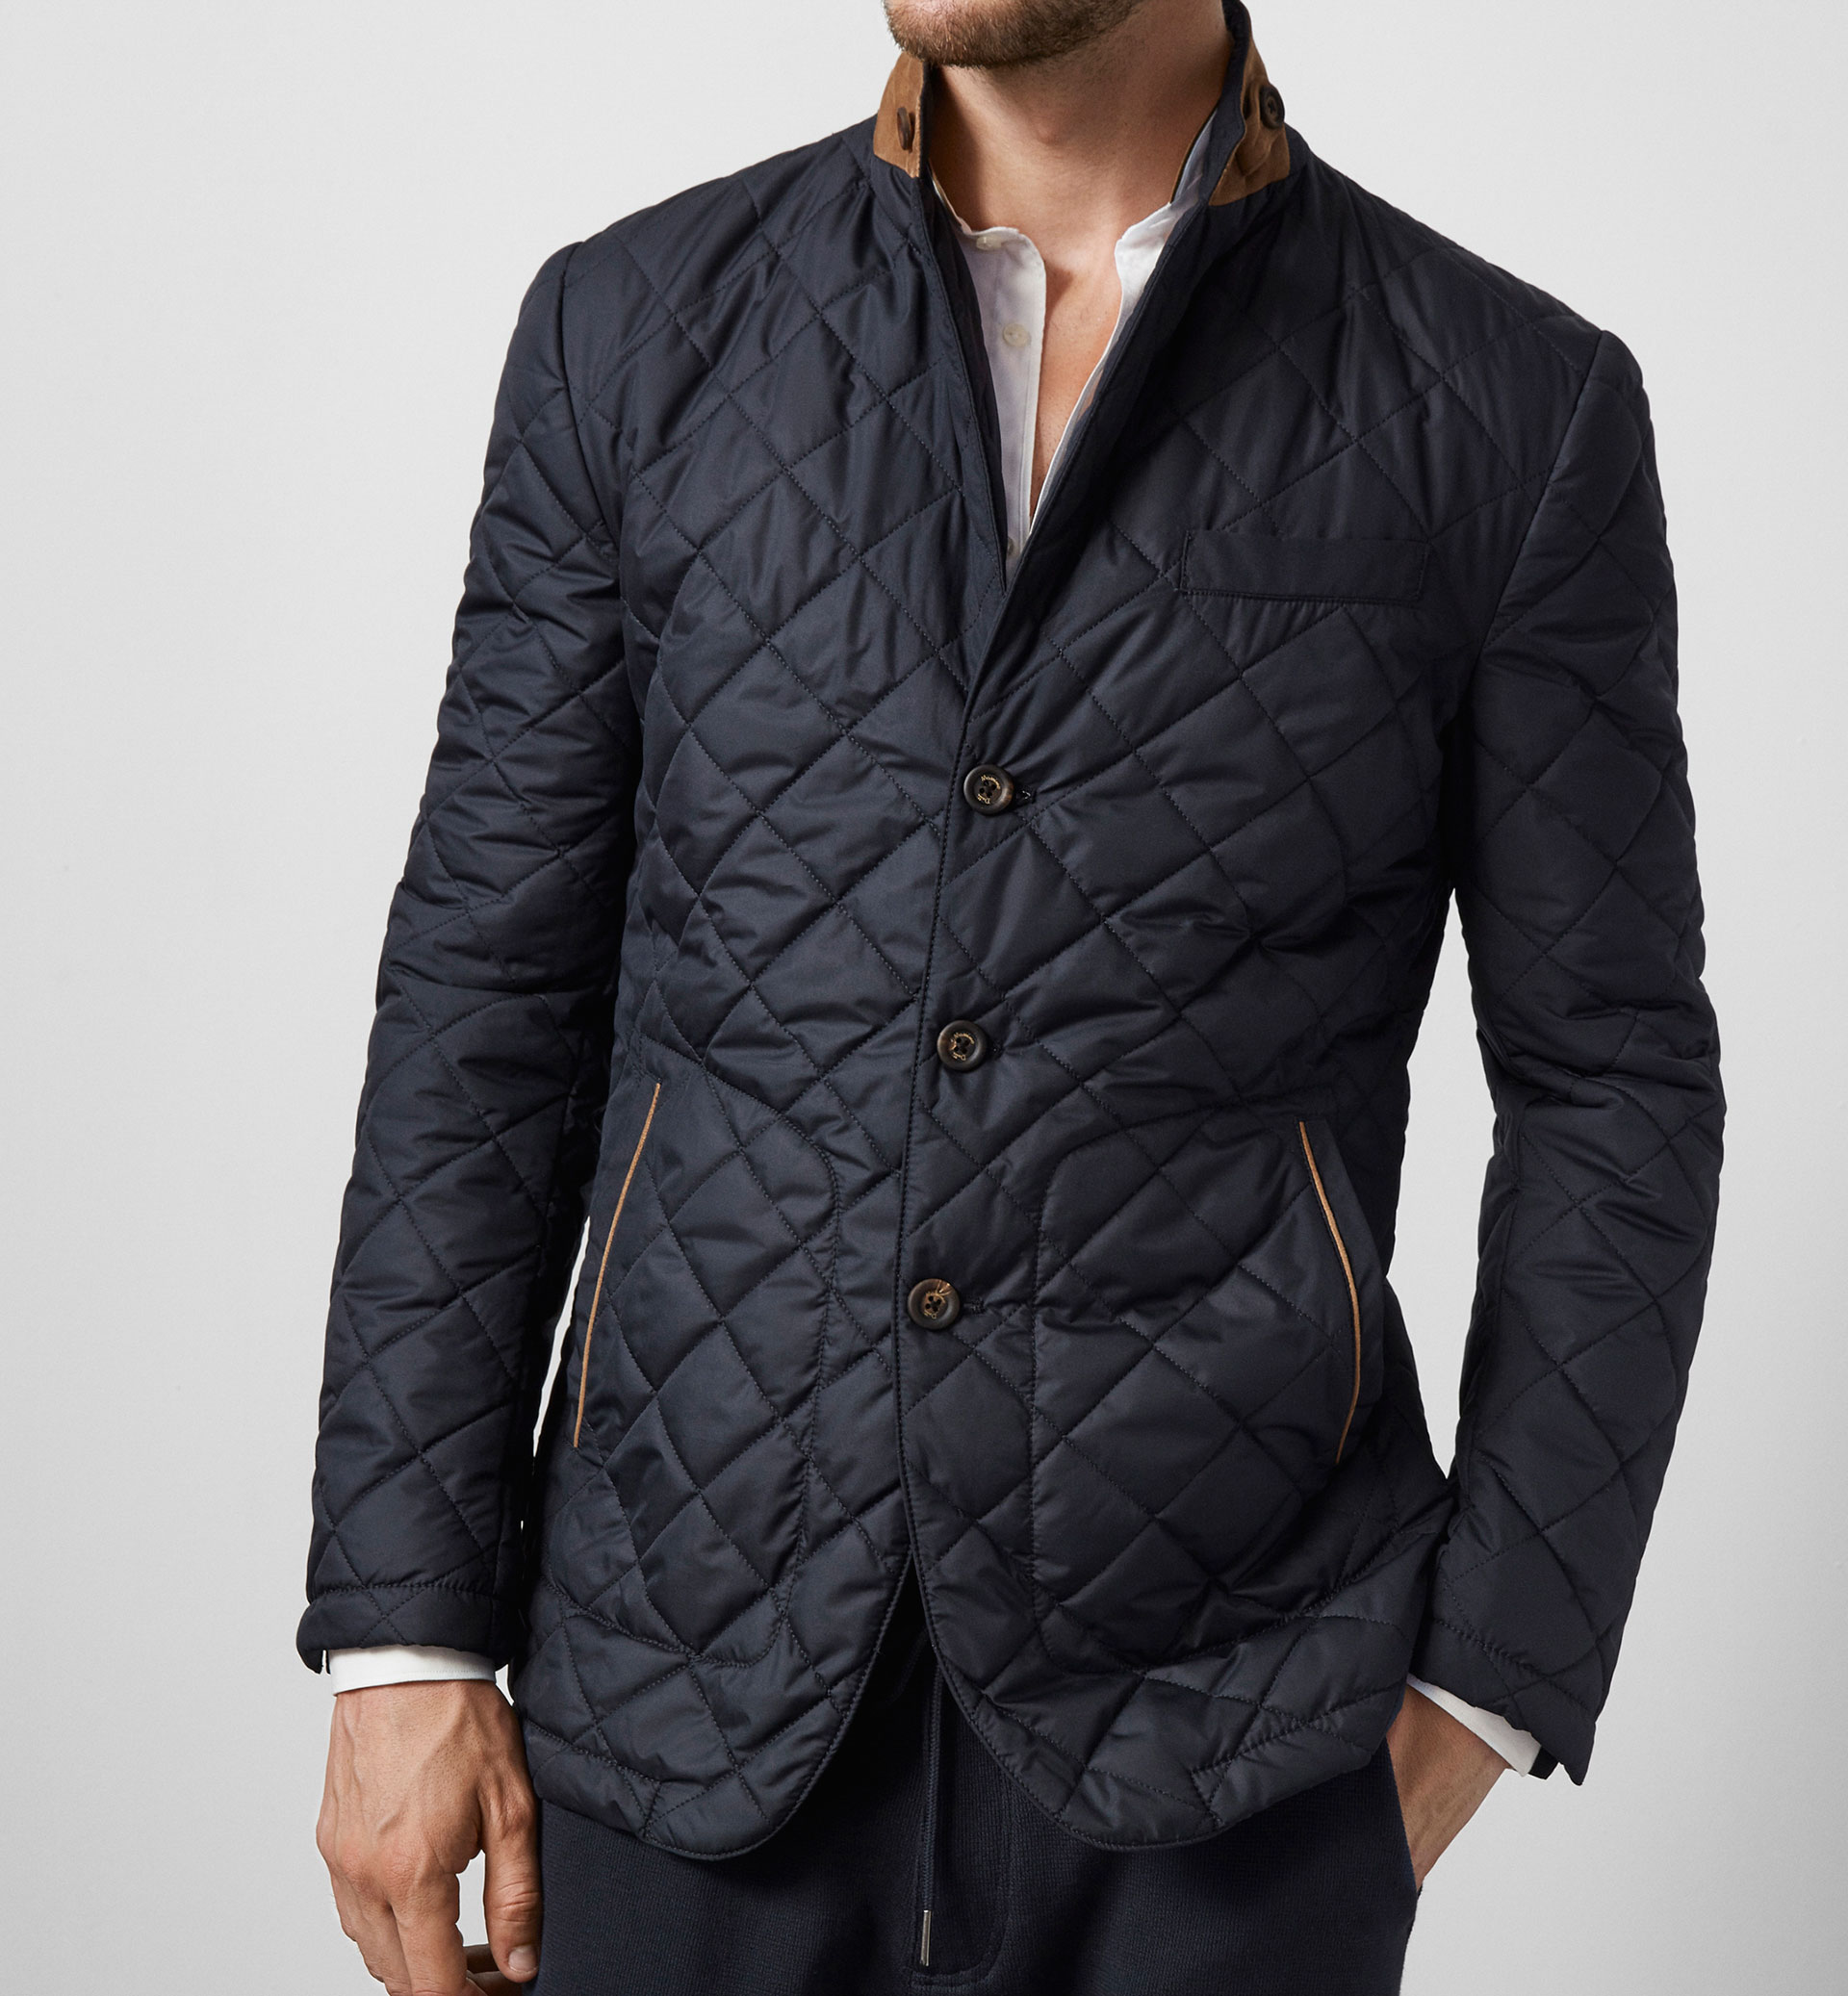 LIMITED EDITION QUILTED BLAZER